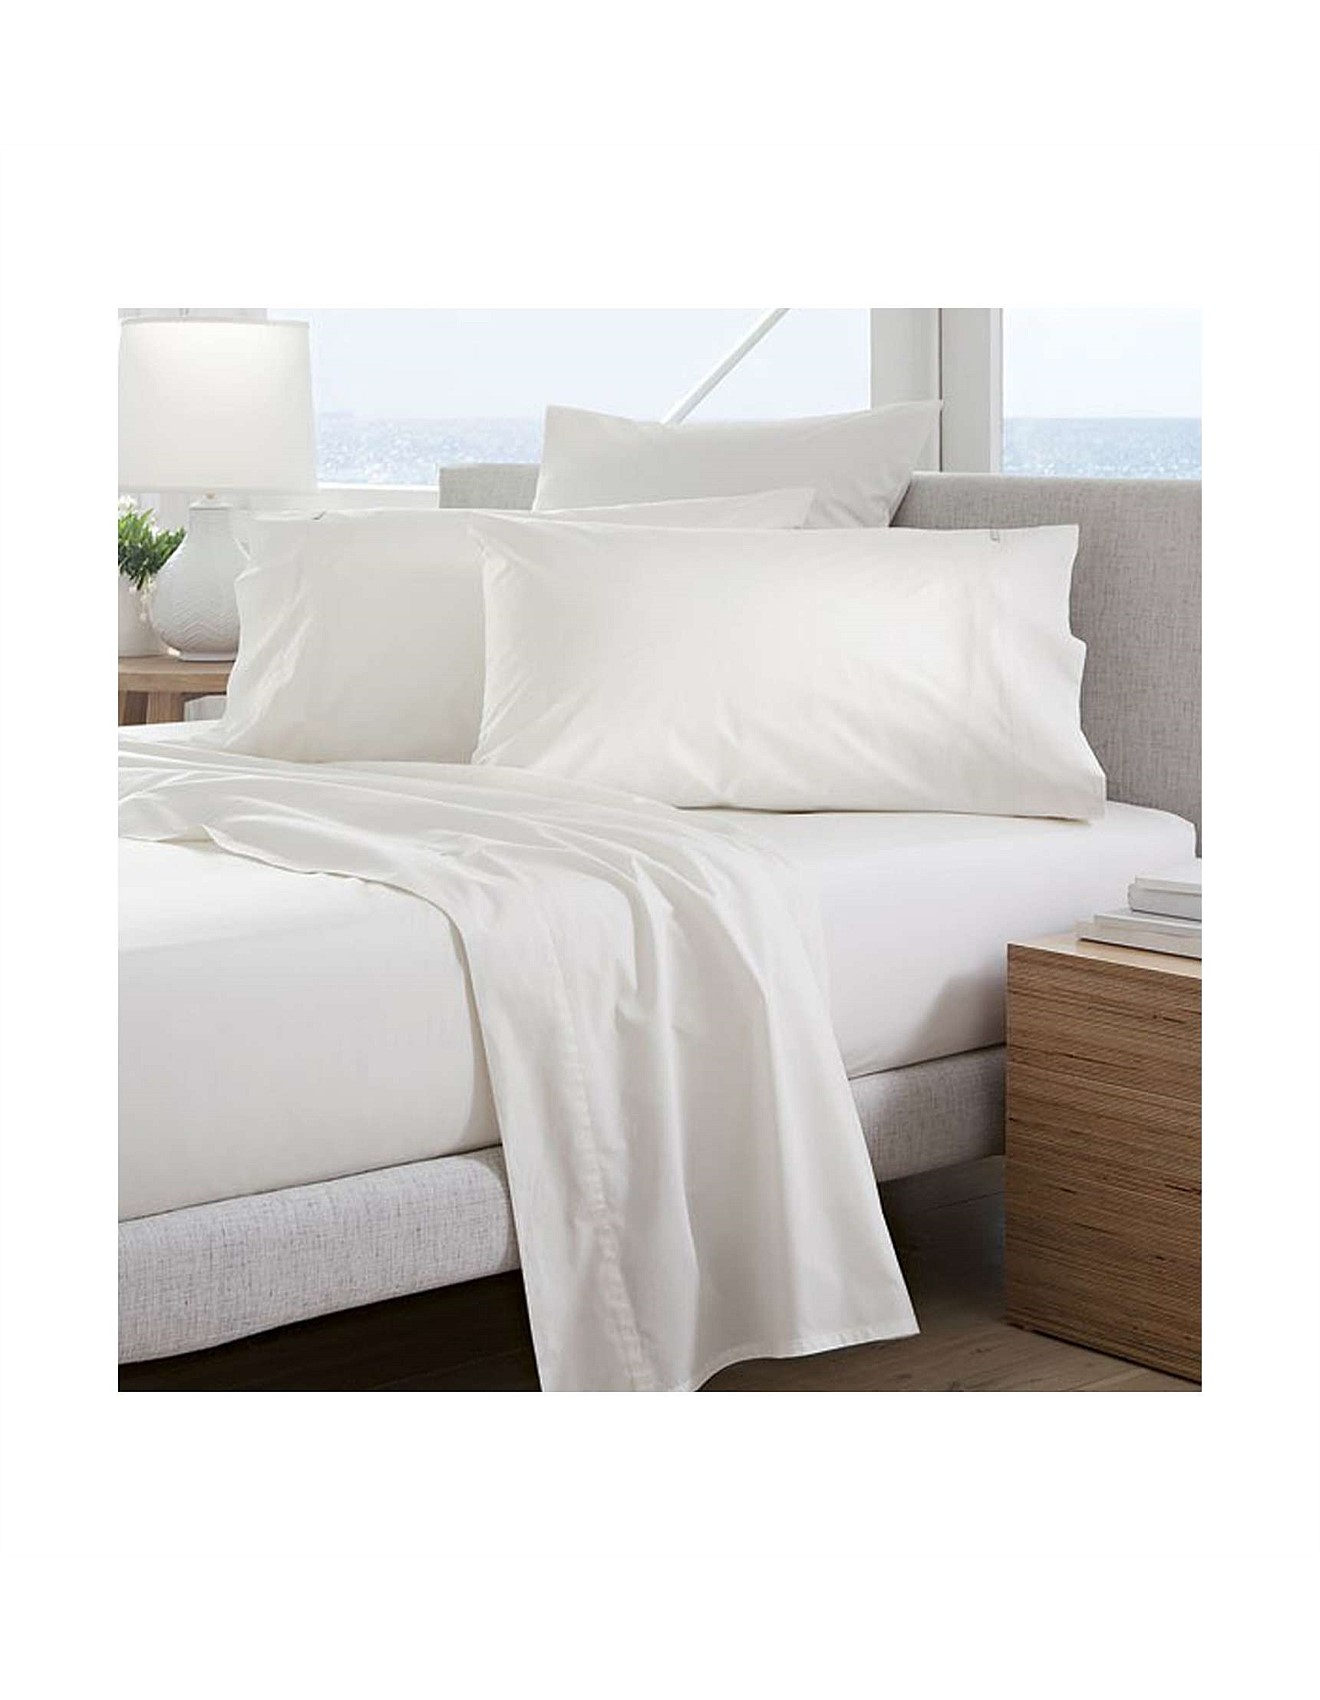 classic percale queen fitted sheet. Black Bedroom Furniture Sets. Home Design Ideas